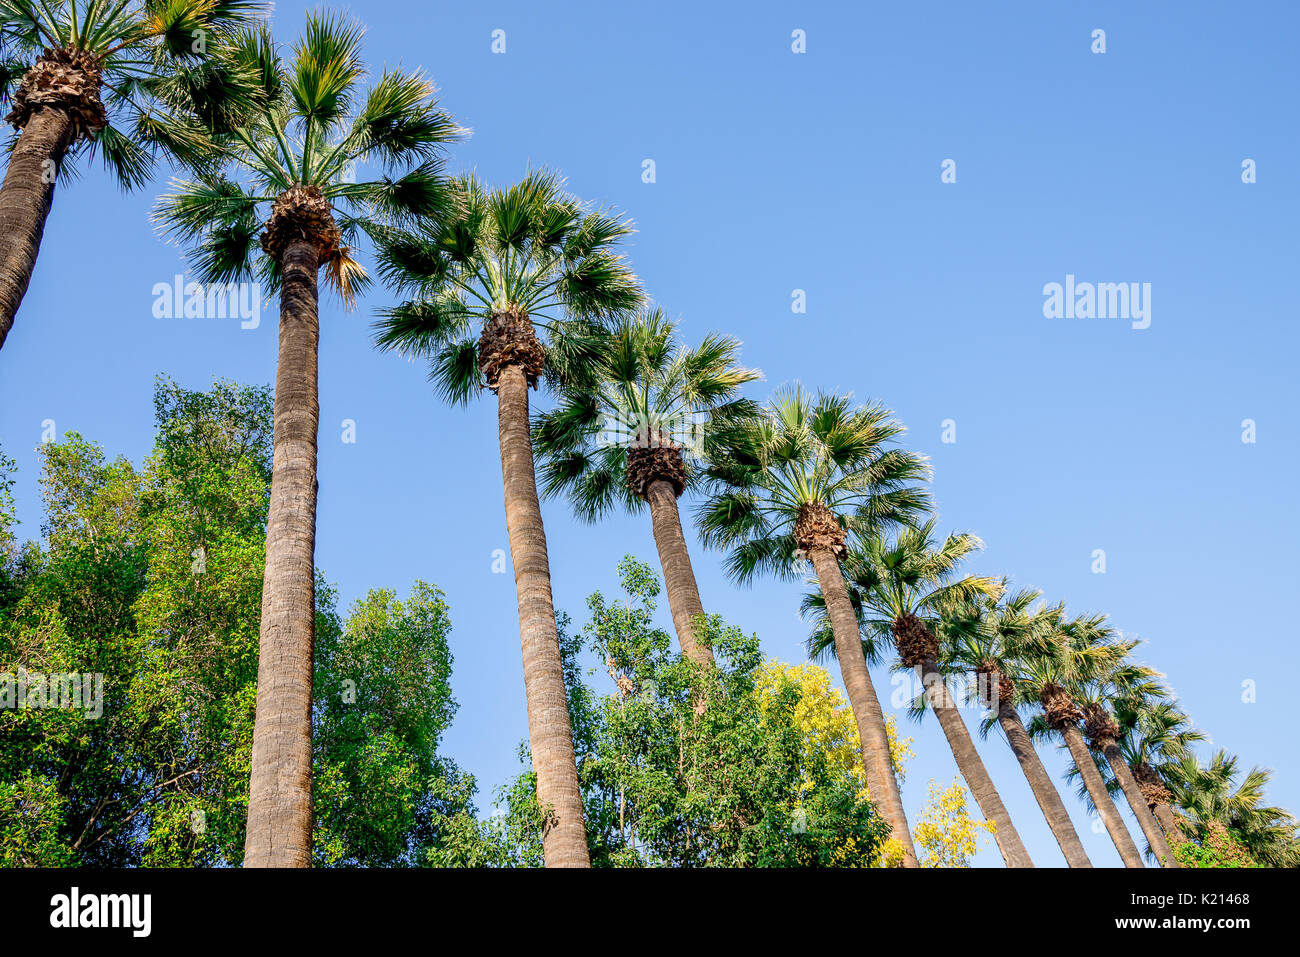 Tall palm trees in Nicosia city public park, Cyprus - Stock Image